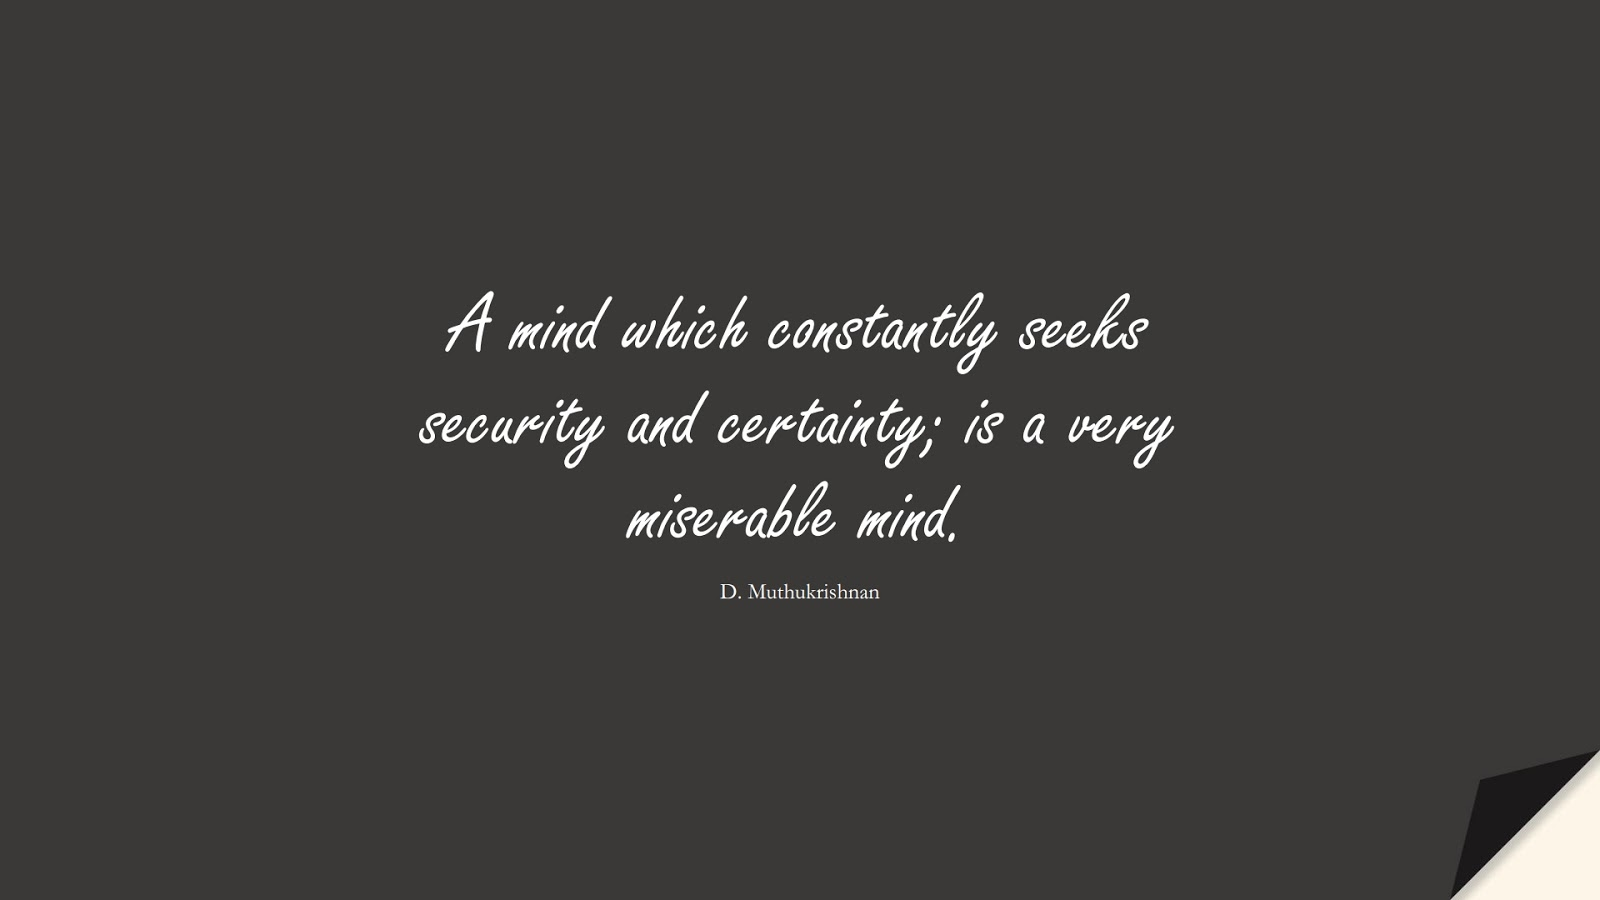 A mind which constantly seeks security and certainty; is a very miserable mind. (D. Muthukrishnan);  #AnxietyQuotes